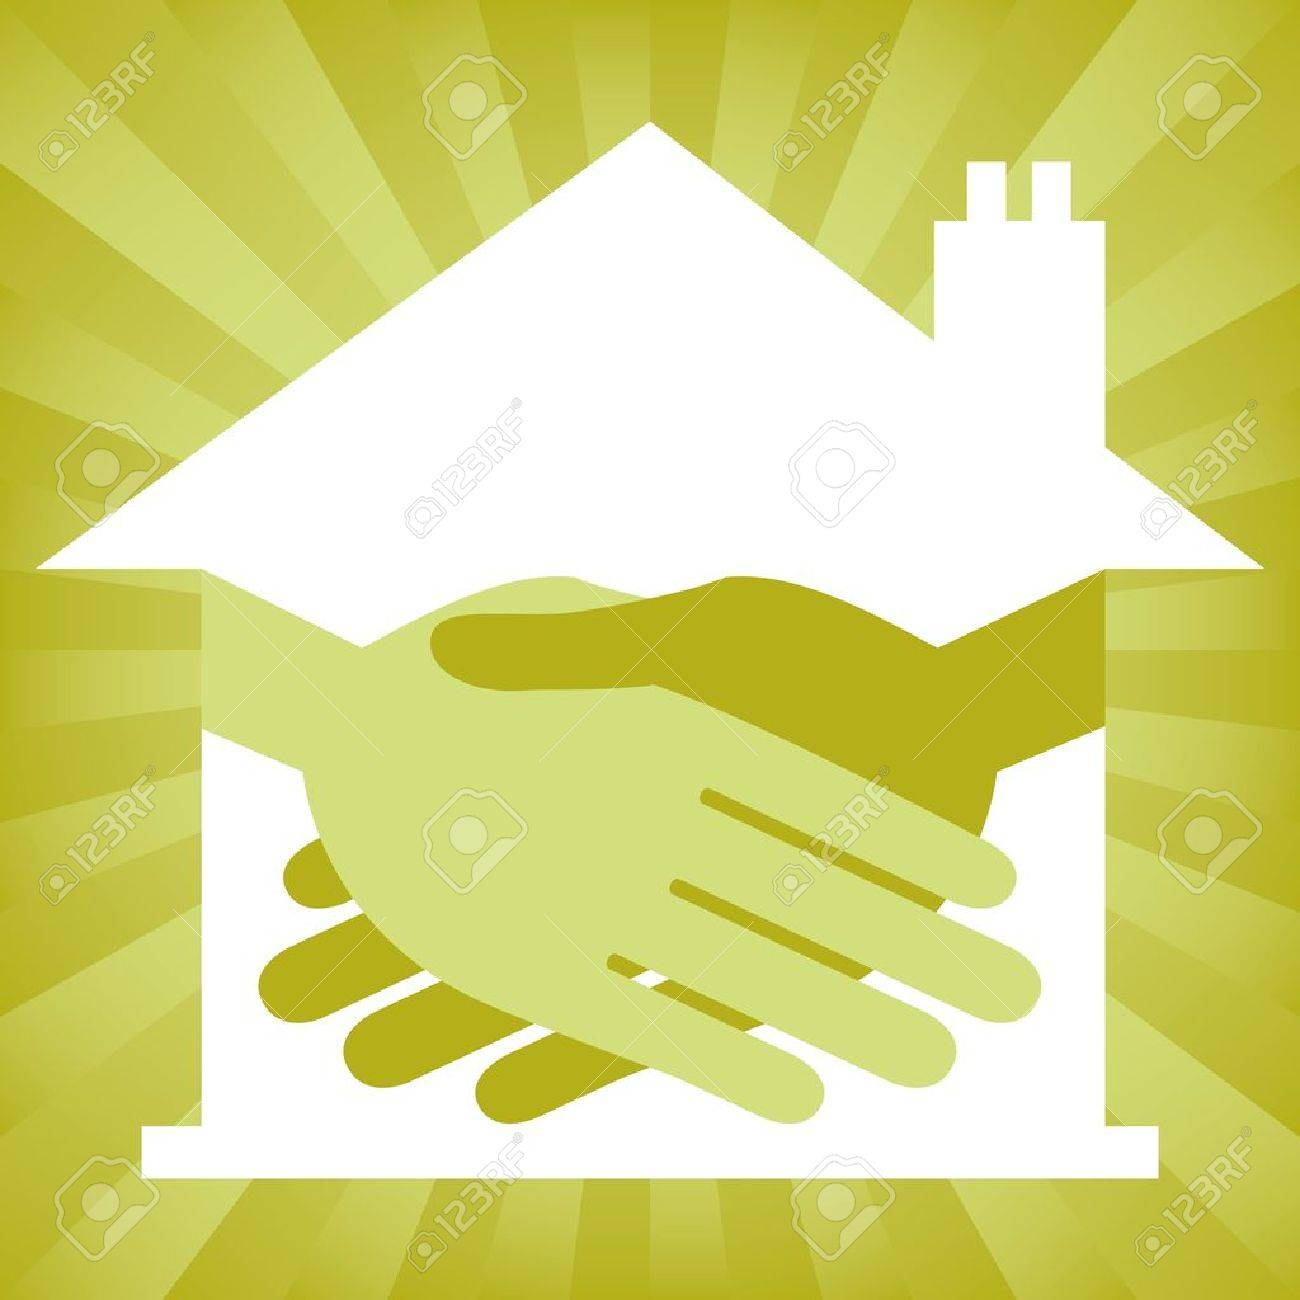 Green property or real estate handshake design. Stock Vector - 9683483